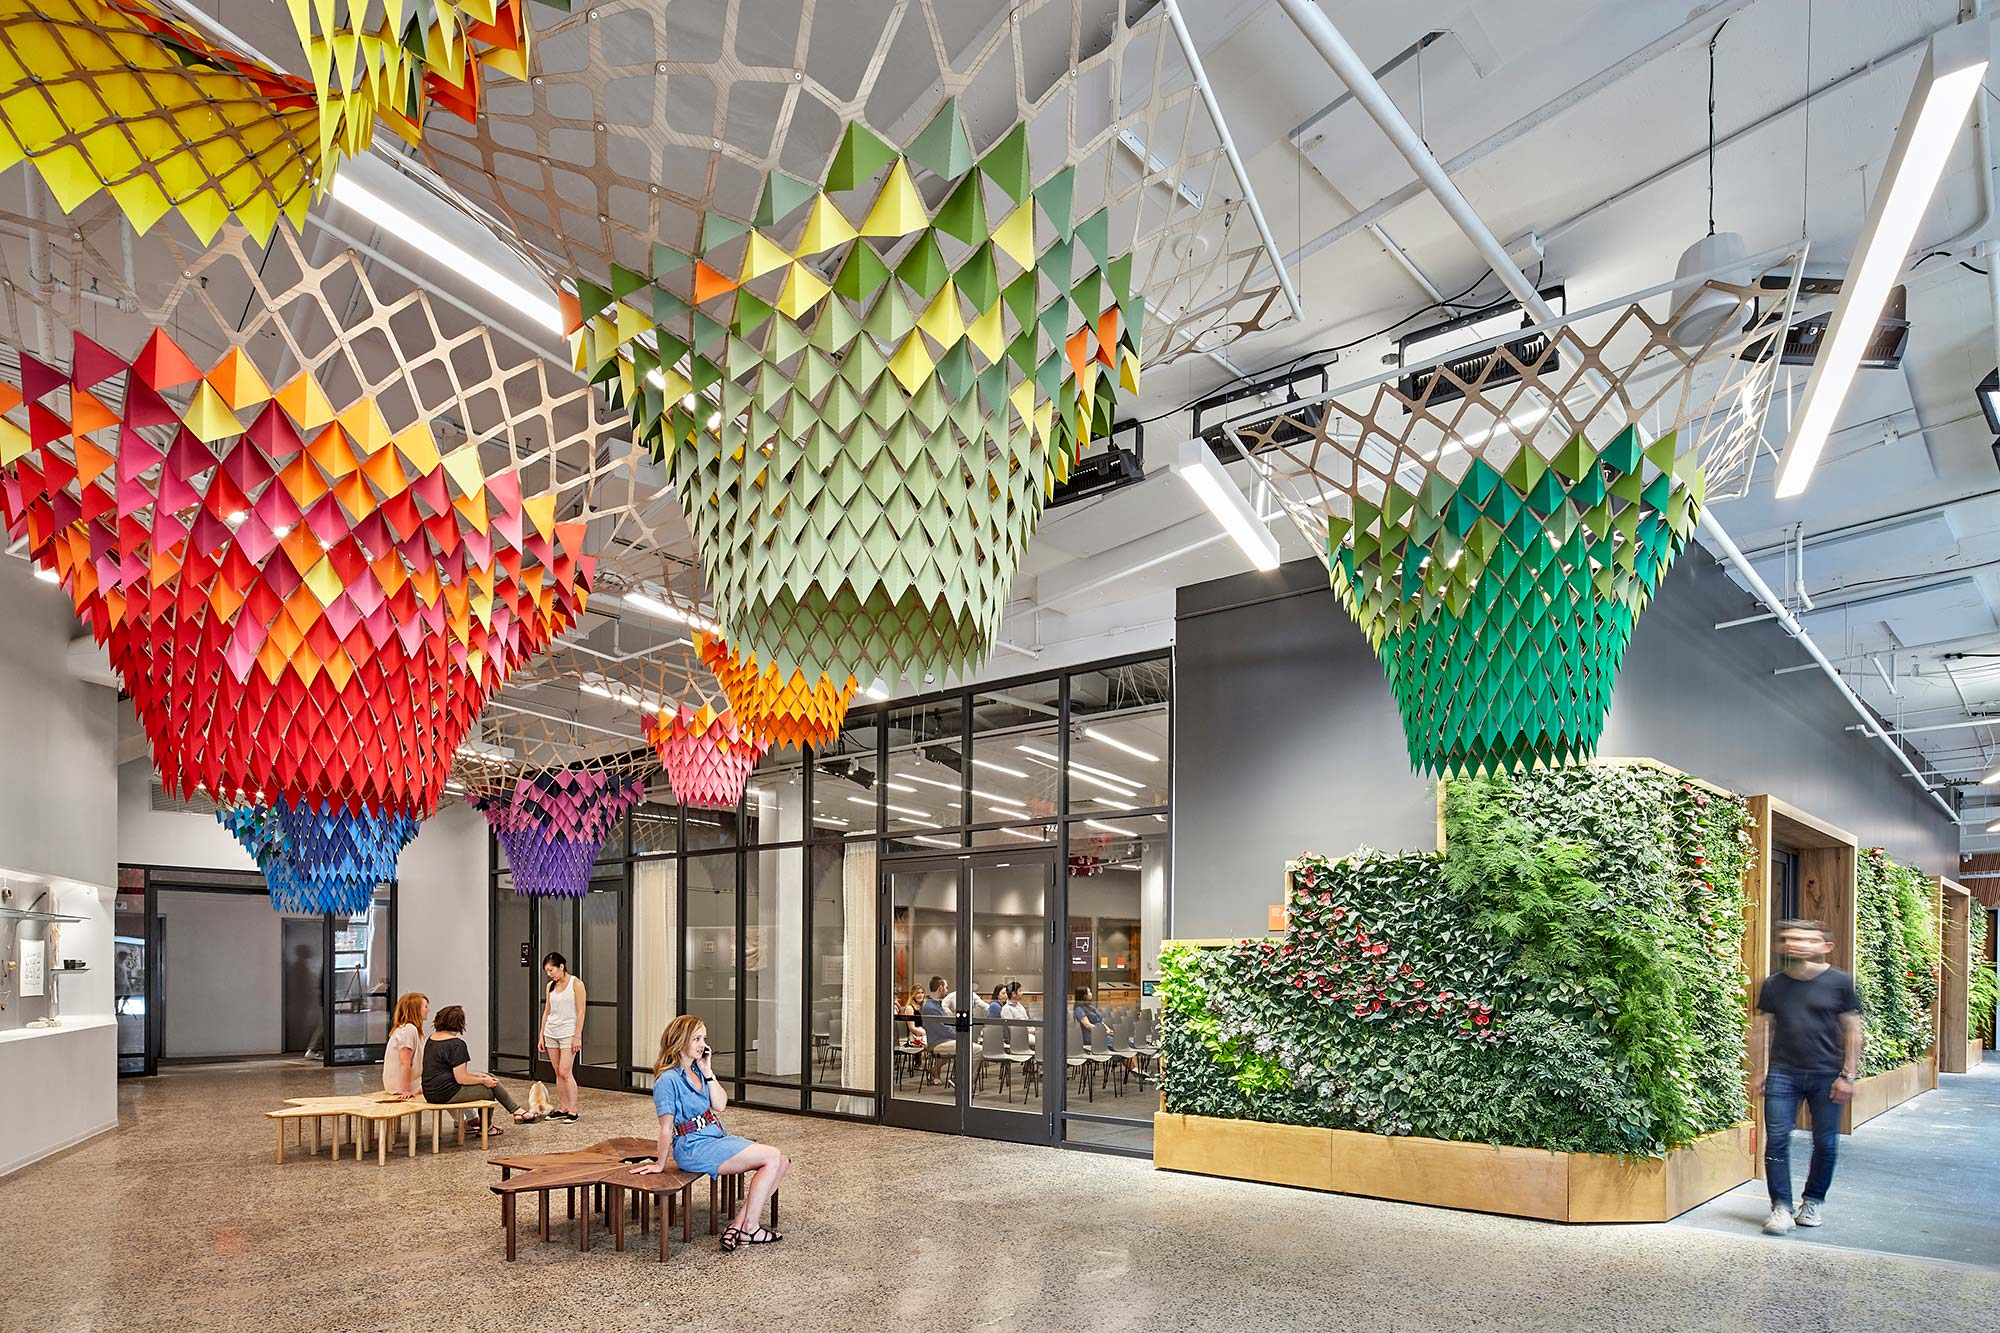 Etsy Headquarters, a 2020 winner of the American Institute of Architects Committee on the Environment Top Ten Awards for excellence in sustainable design.